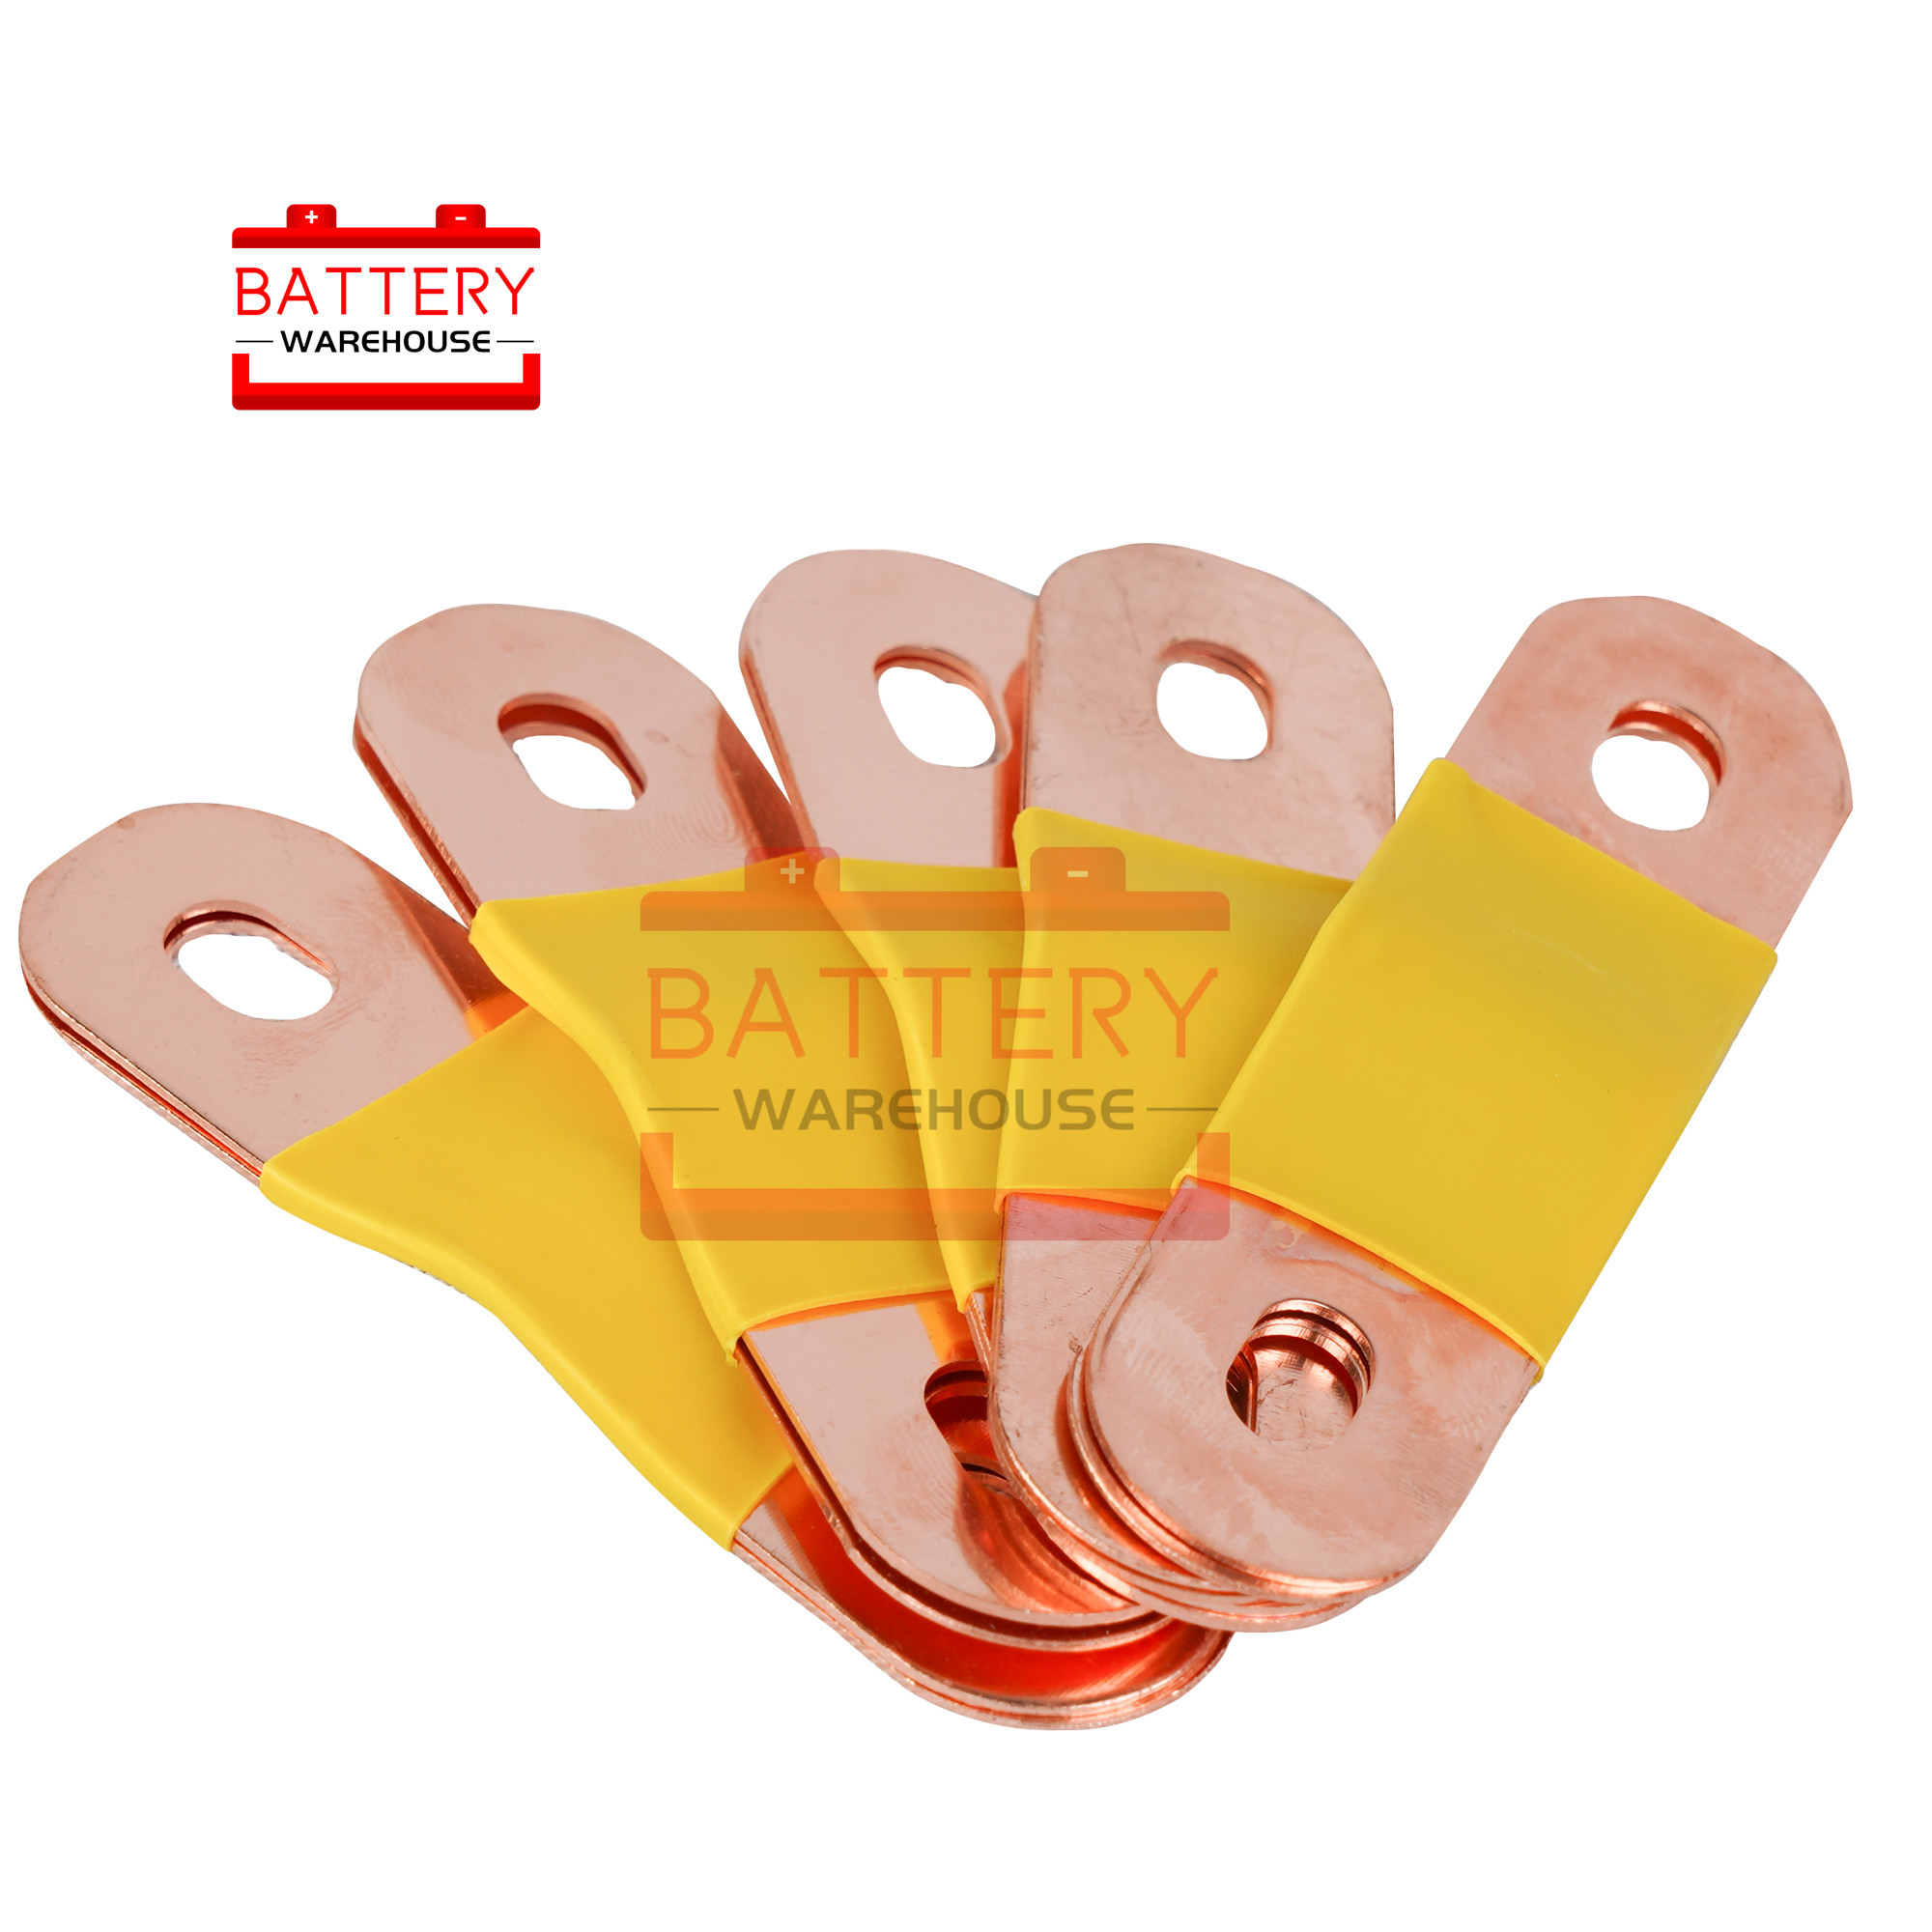 Copper Bus Bar cell to cell For lithium 3.7V CATL 3.2V 3.7V <font><b>12V</b></font> 24v 48V lifepo4 <font><b>battery</b></font> 100AH 120AH <font><b>150AH</b></font> 200AH 300AH 400AH image